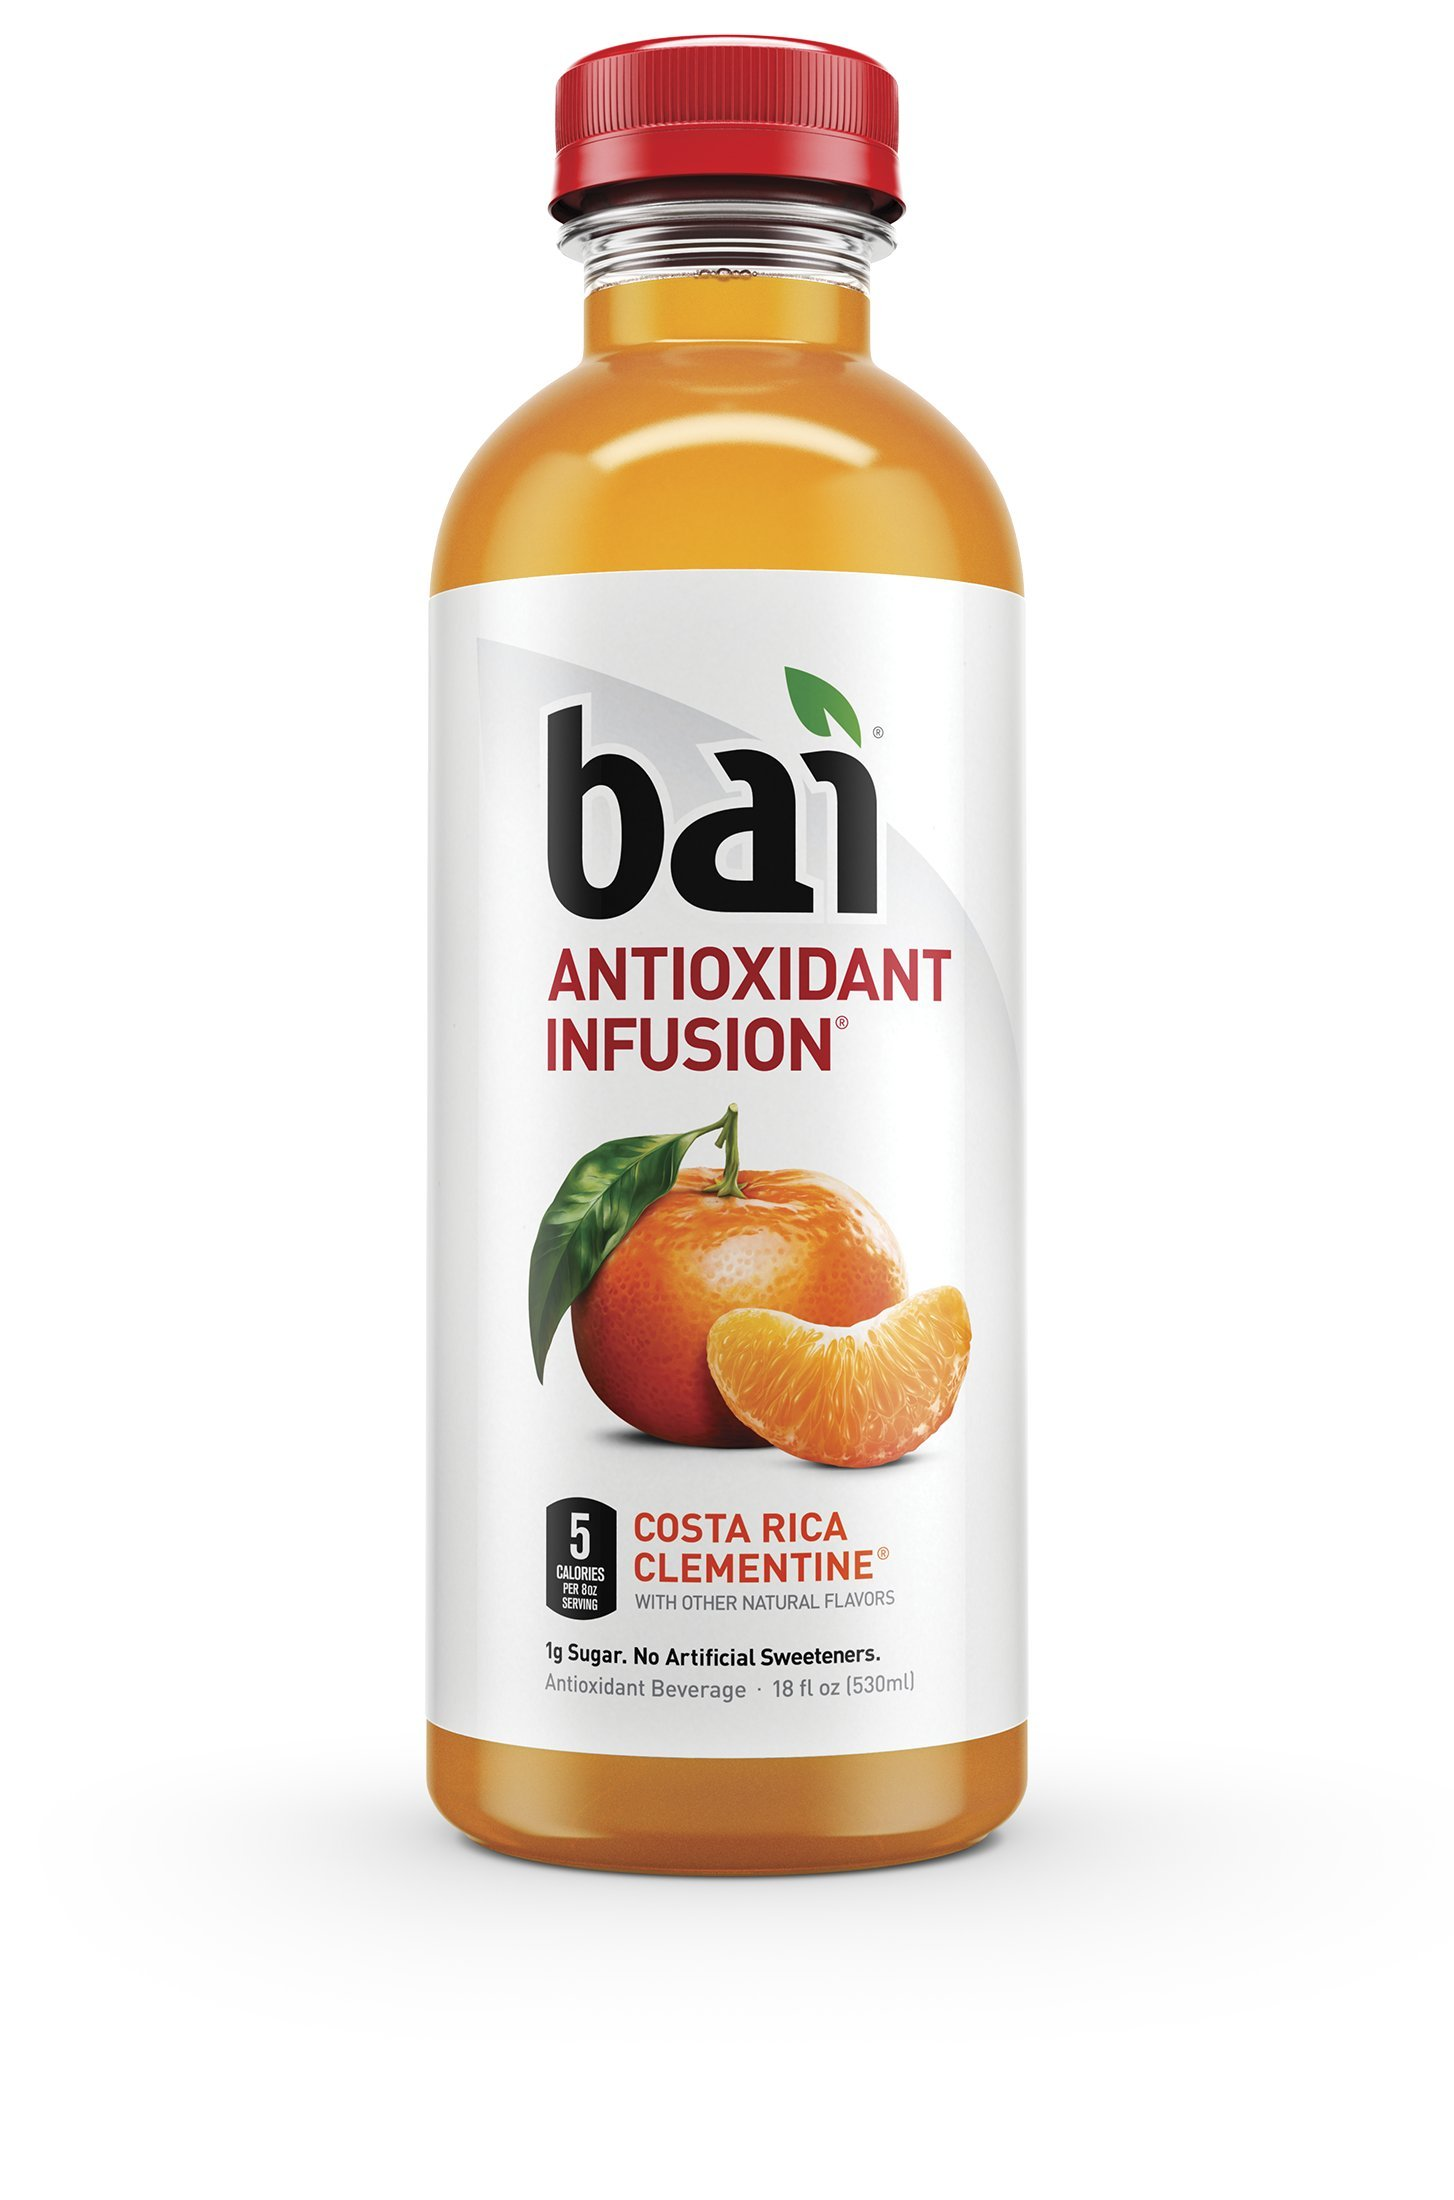 Bai Costa Rica Clementine, Antioxidant Infused Beverage, 18 Fluid Ounce Bottles, 12 count